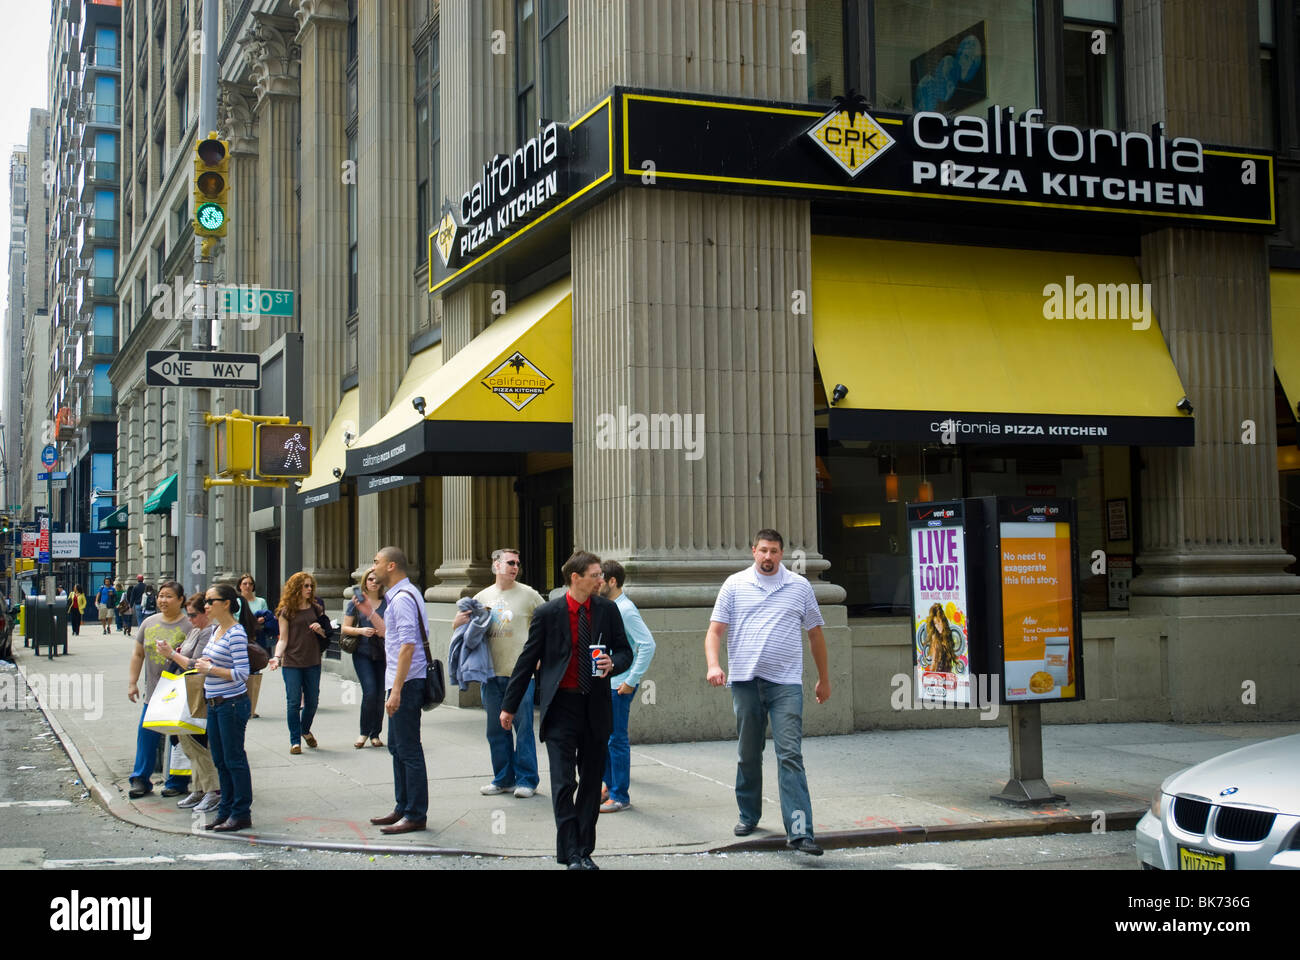 A branch of the California Pizza Kitchen restaurant chain in New ...